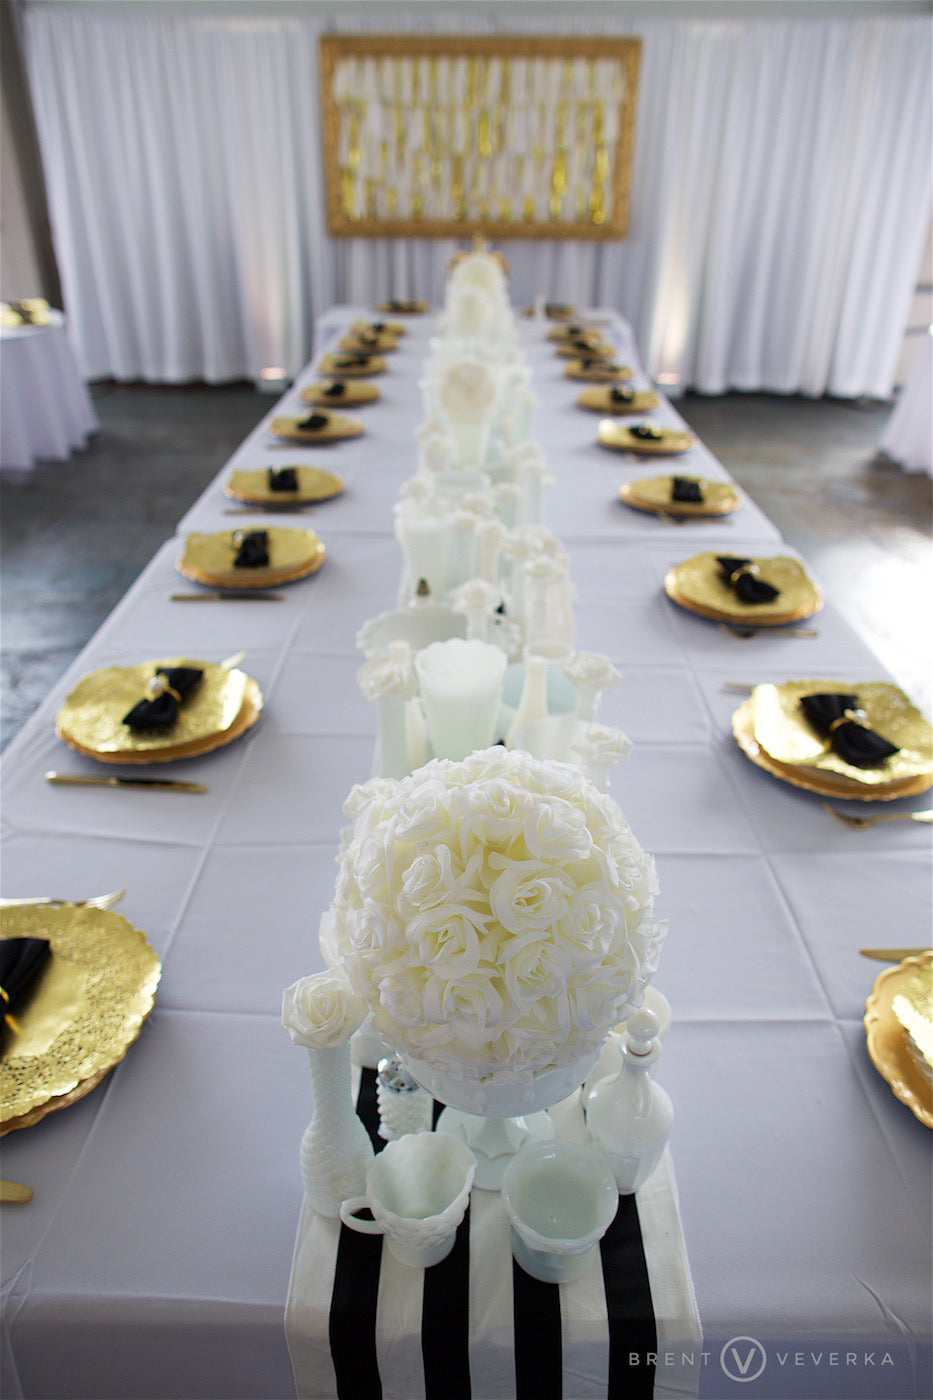 Ultra Glam Black, White, and Gold Reception Table | 1920s Wedding | Glam Speakeasy Wedding | Brent Veverka Media